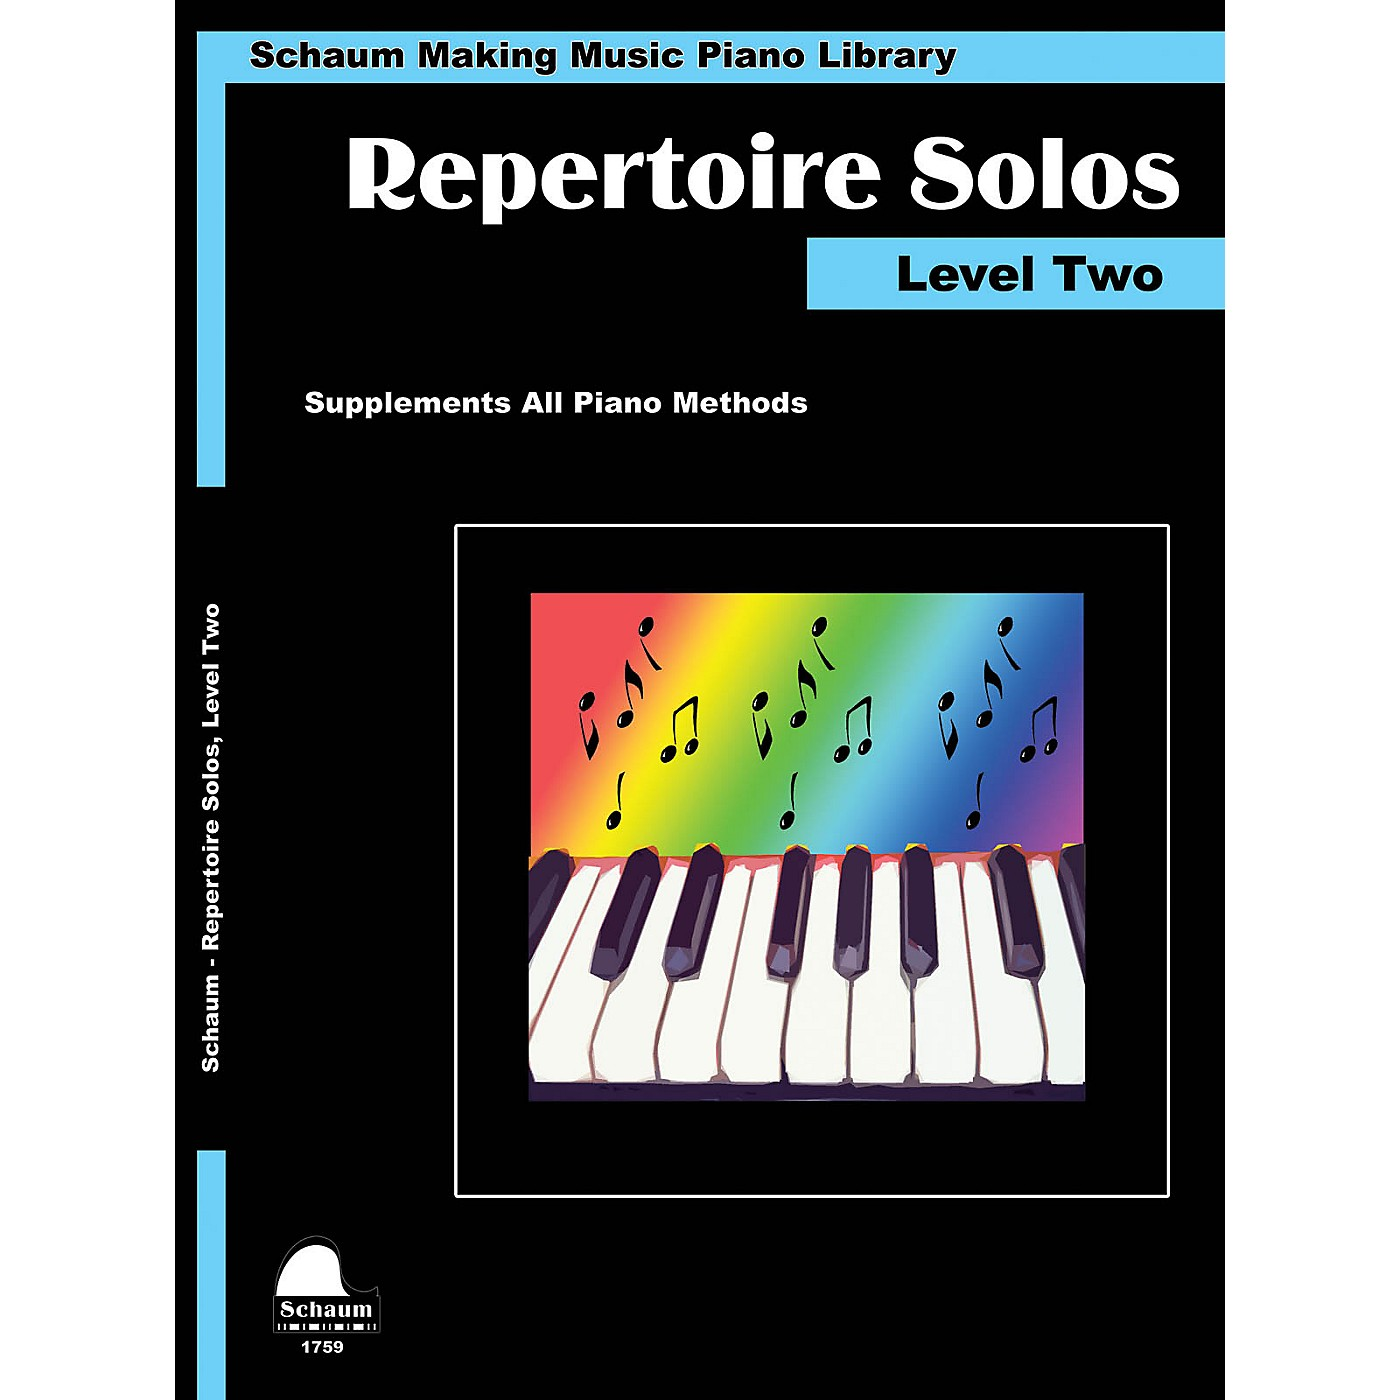 SCHAUM Repertoire Solos Level Two Educational Piano Book by Wesley Schaum (Level Late Elem) thumbnail